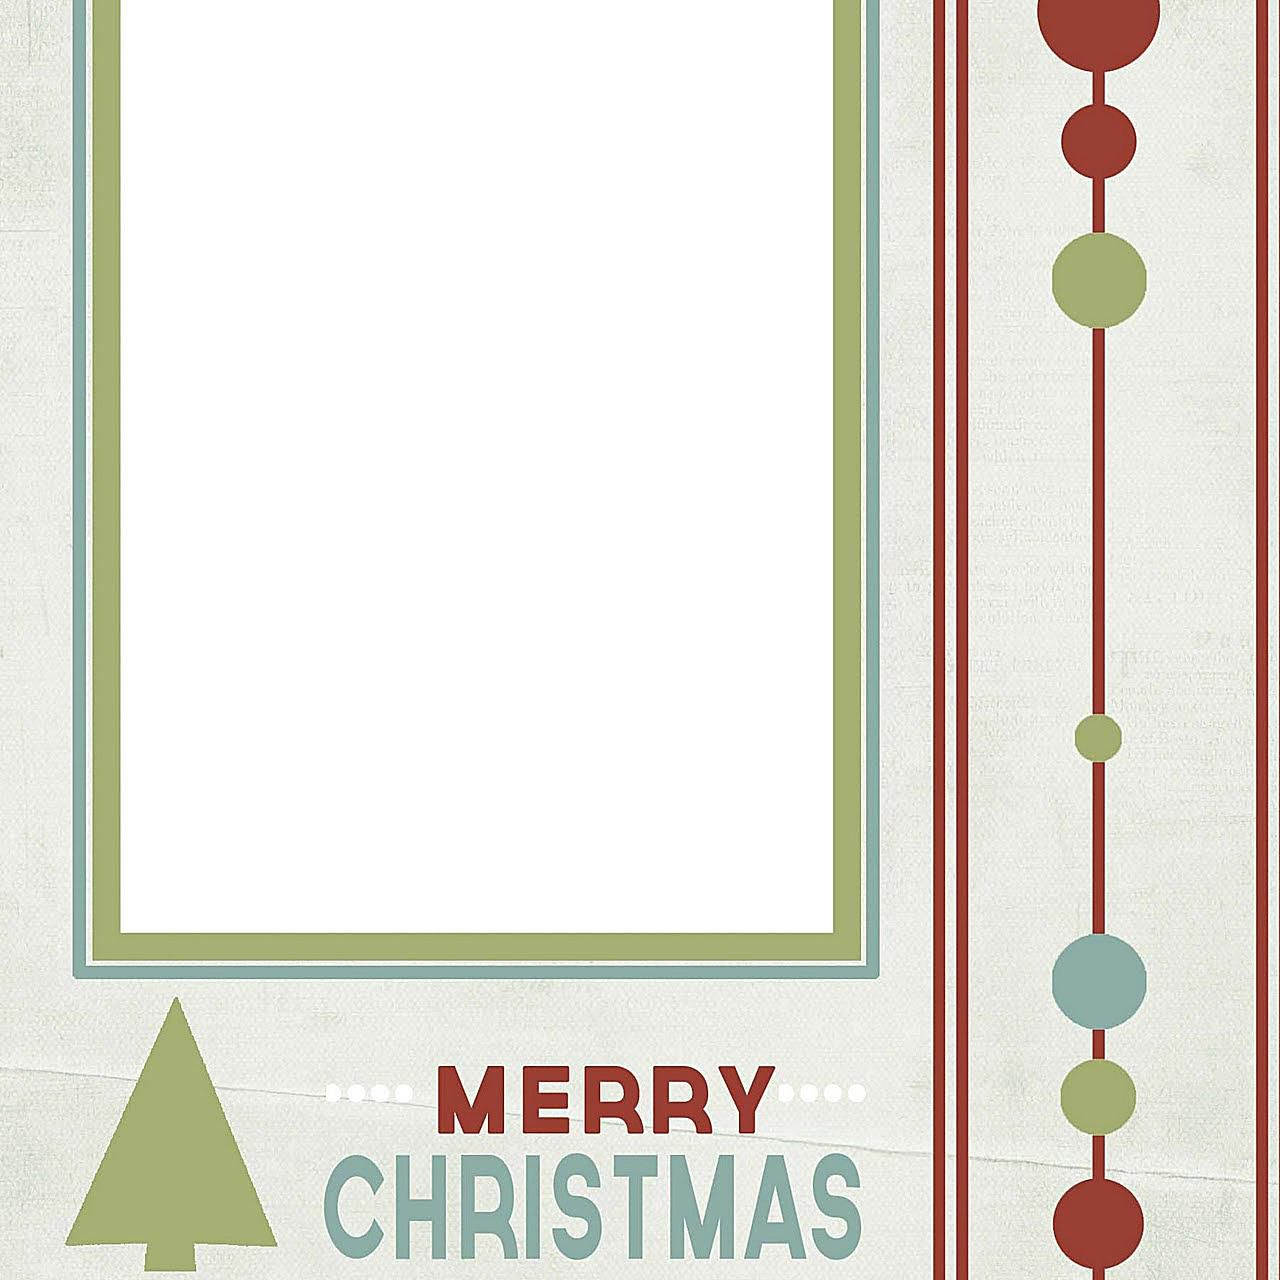 11 Free Templates For Christmas Photo Cards - Free Printable Christmas Cards With Photo Insert